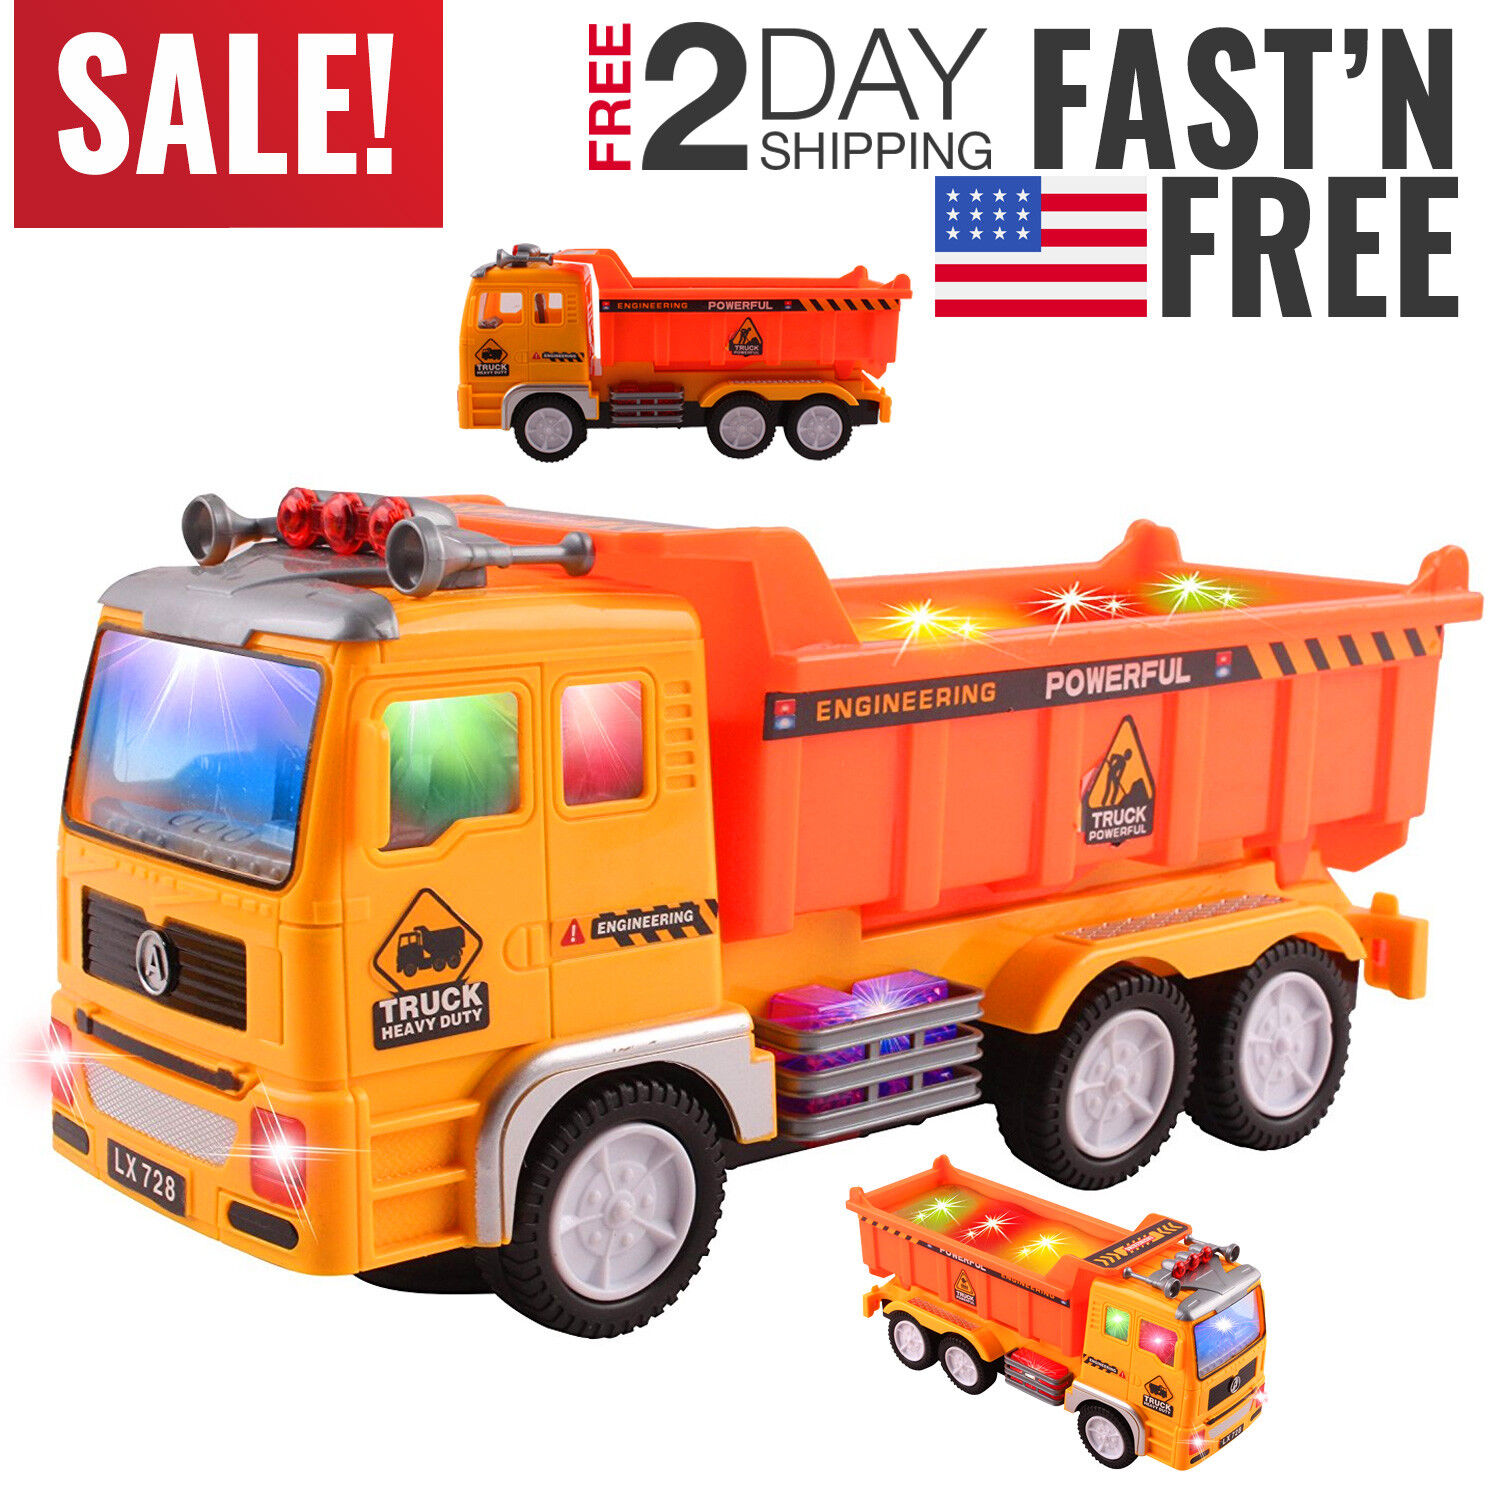 $13.49 - Toys for Boys Truck Kids Toddler Construction Car 3 4 5 6 7 8 Year Old Boy Cool